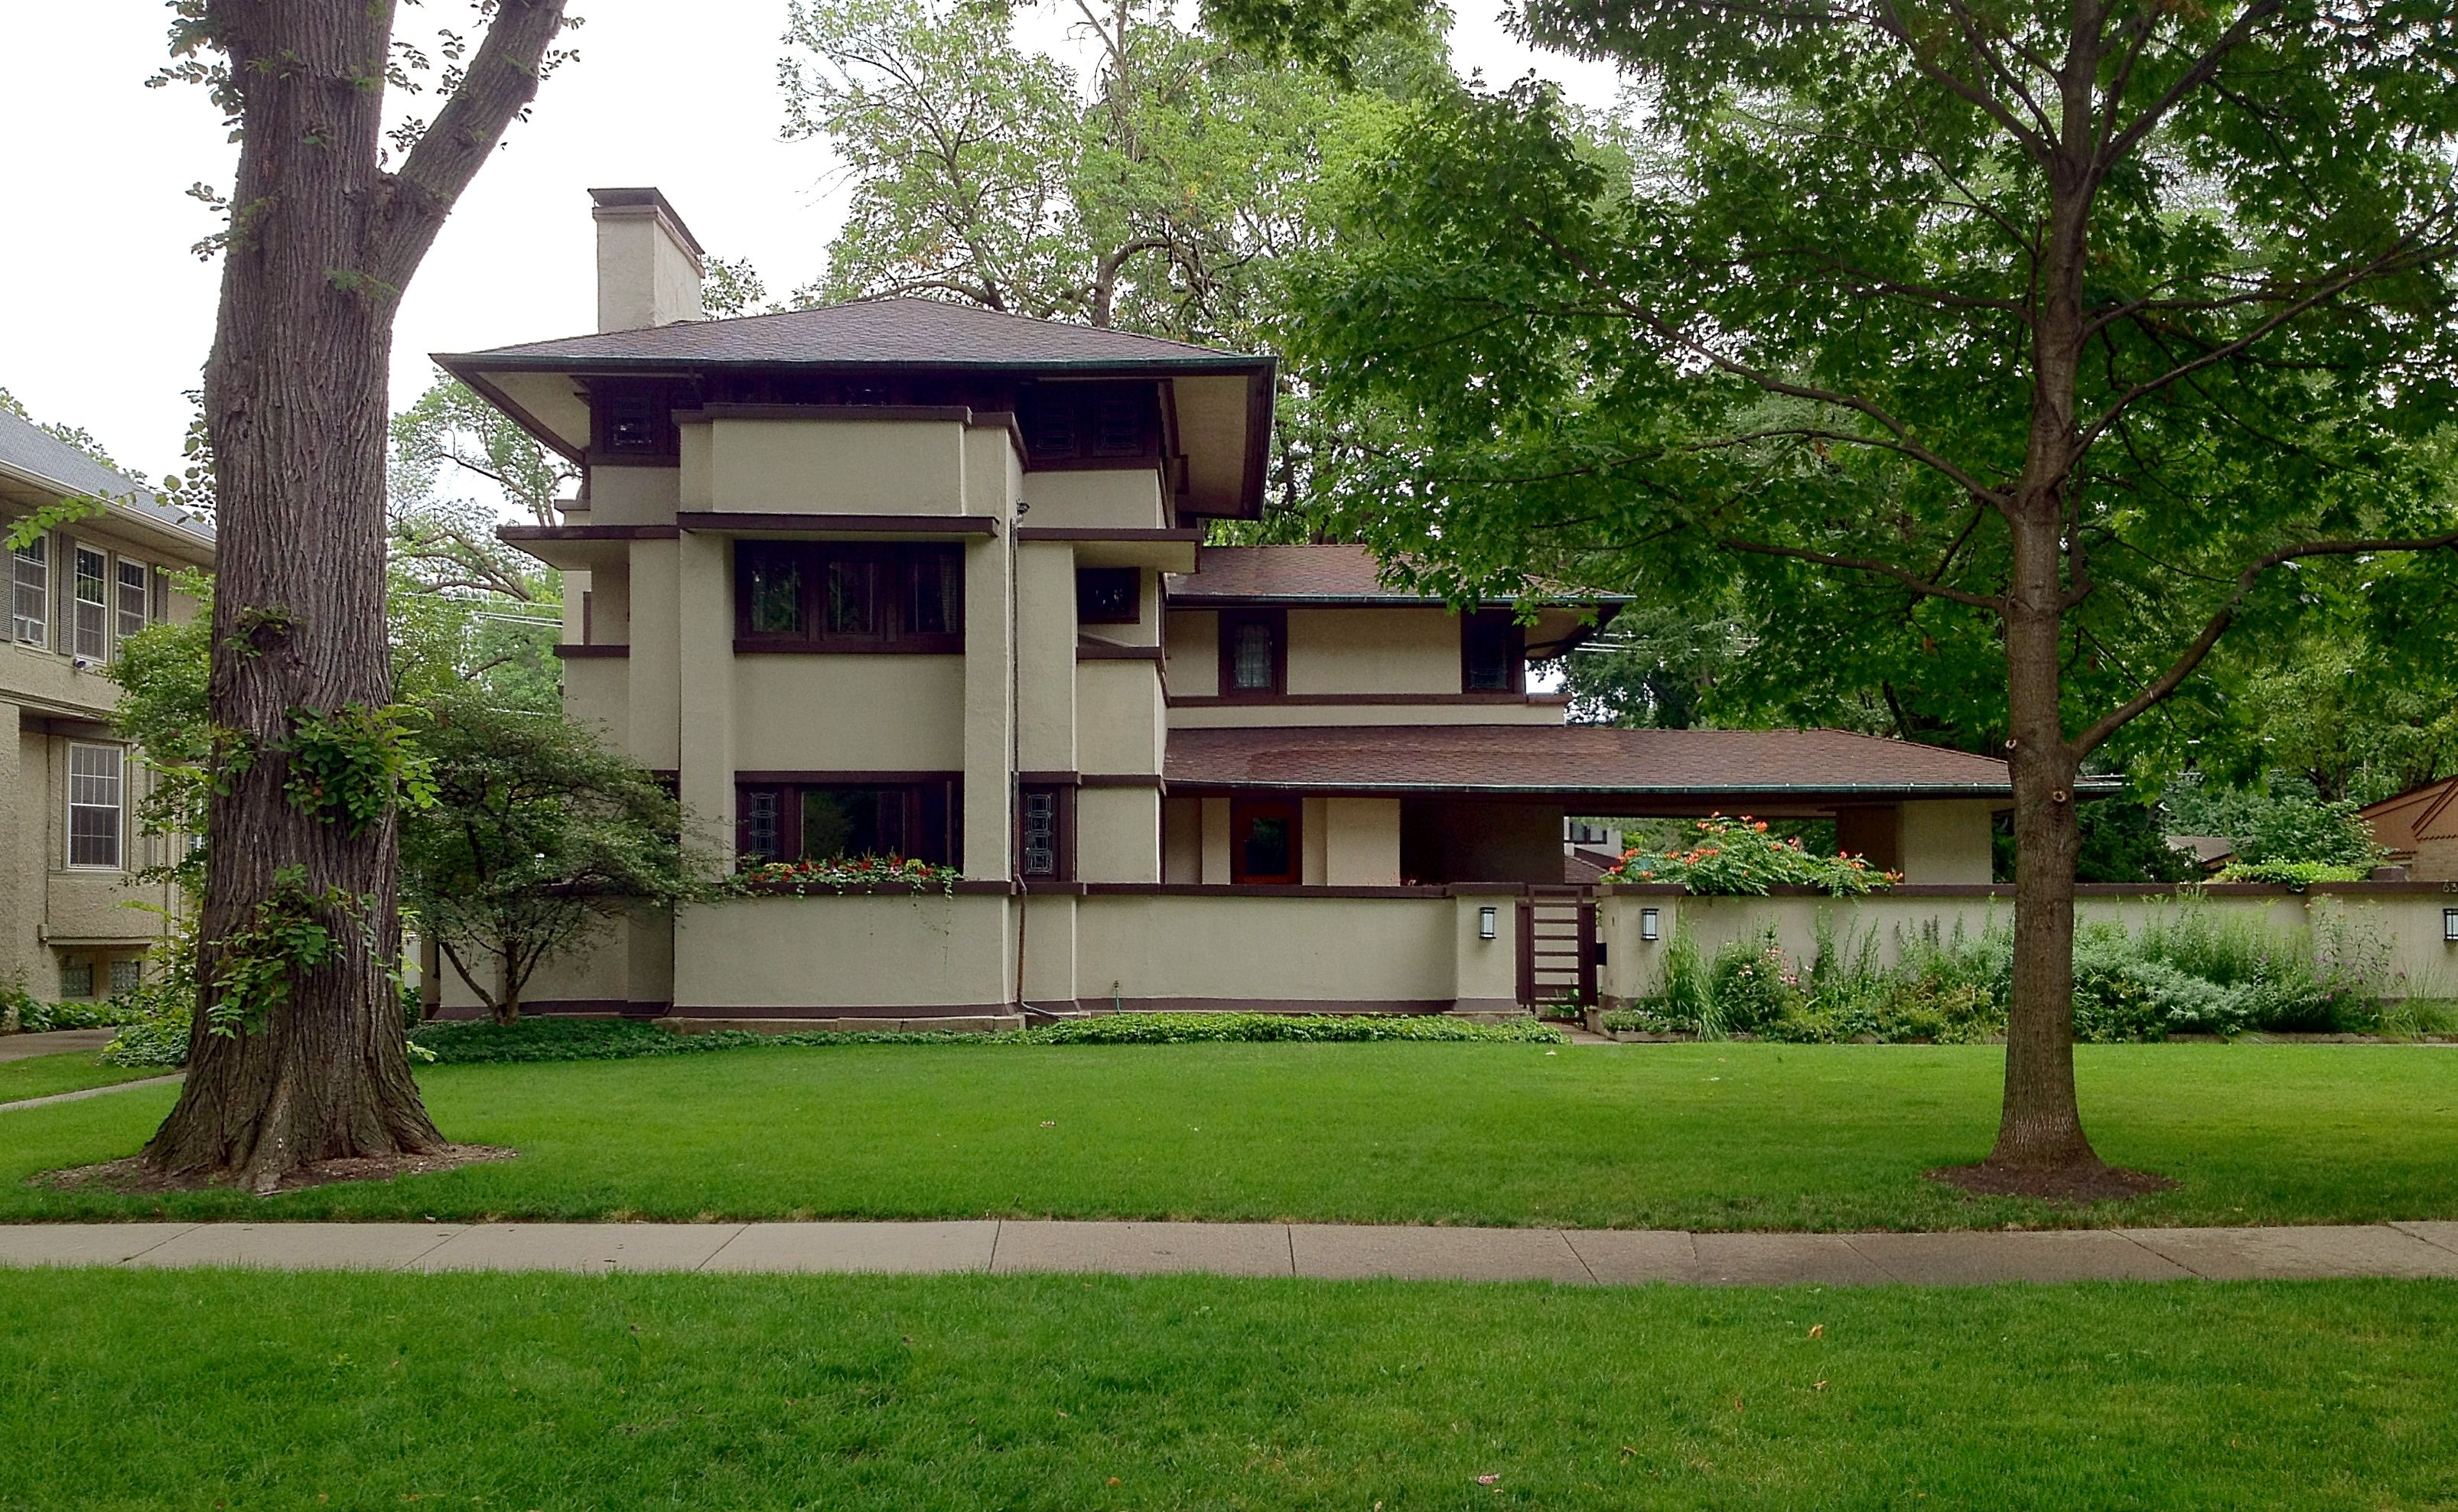 Traditional Classic Home Design Of Frank Lloyd Wright Prairie Style In  Modern Suburb Area: Diego Tokyo Lloy South Bend John Wrigh Frankloyd Ennis  On In 1900 ...